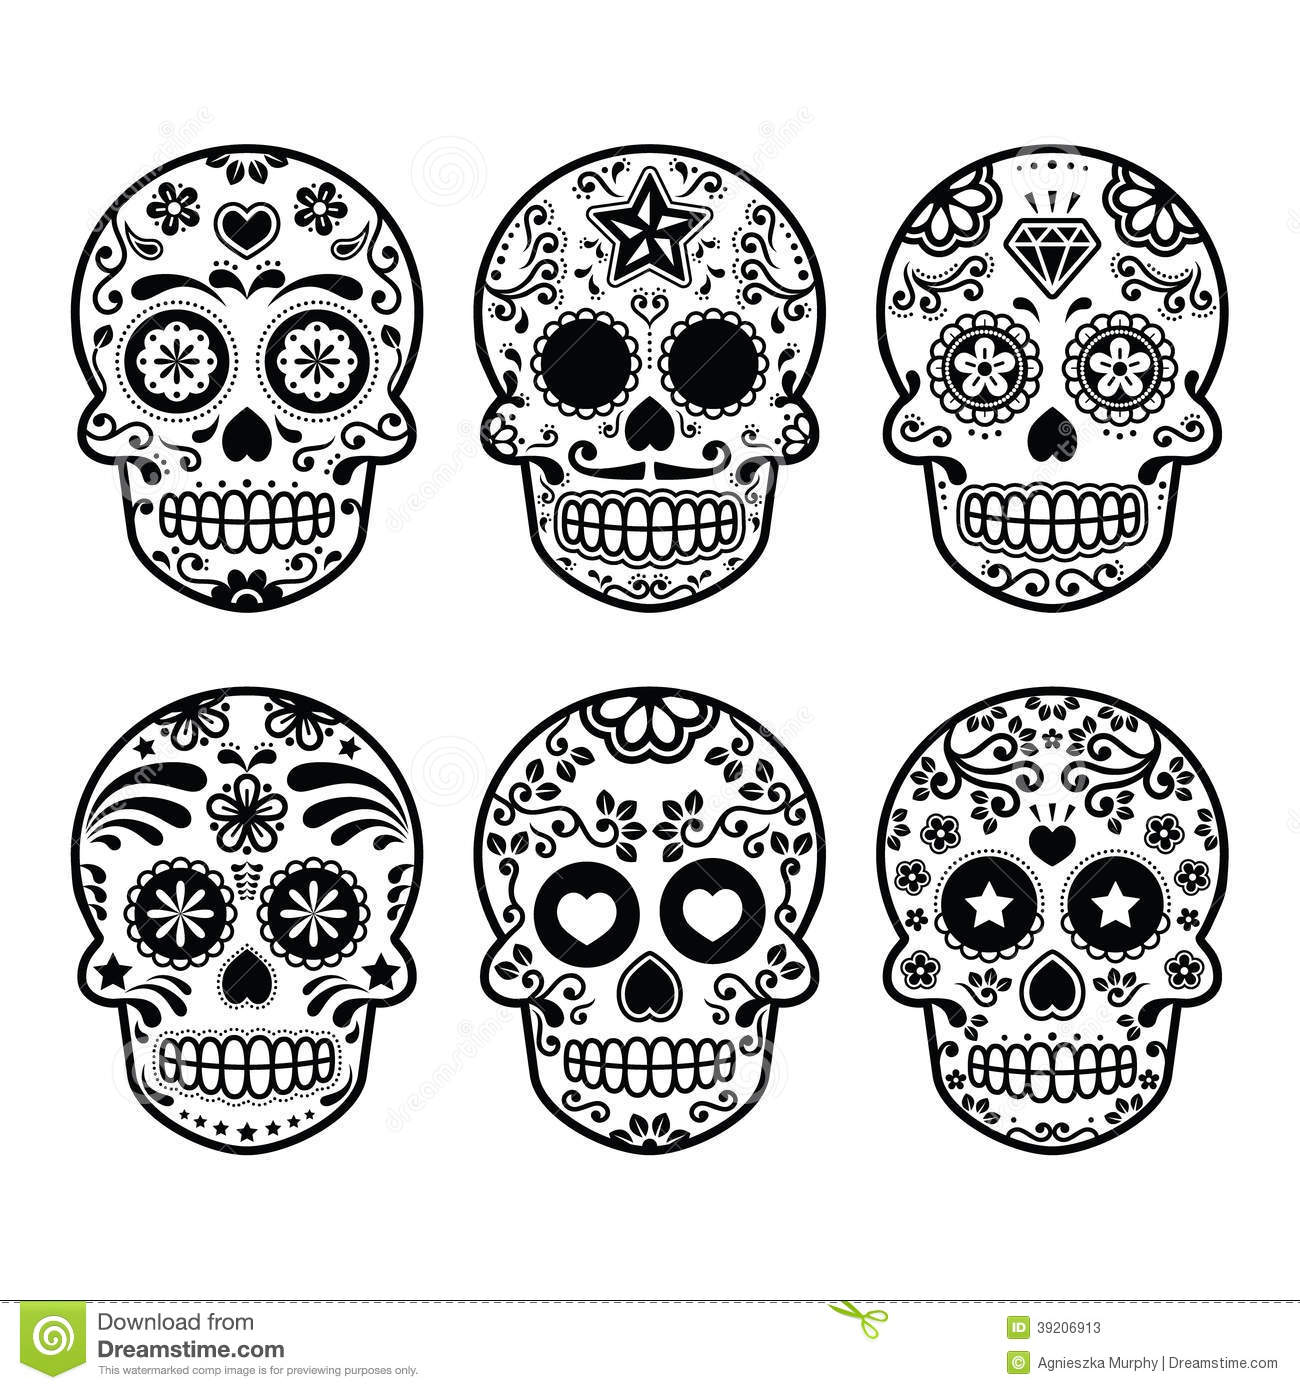 Six sugary Day of the Dead Skulls